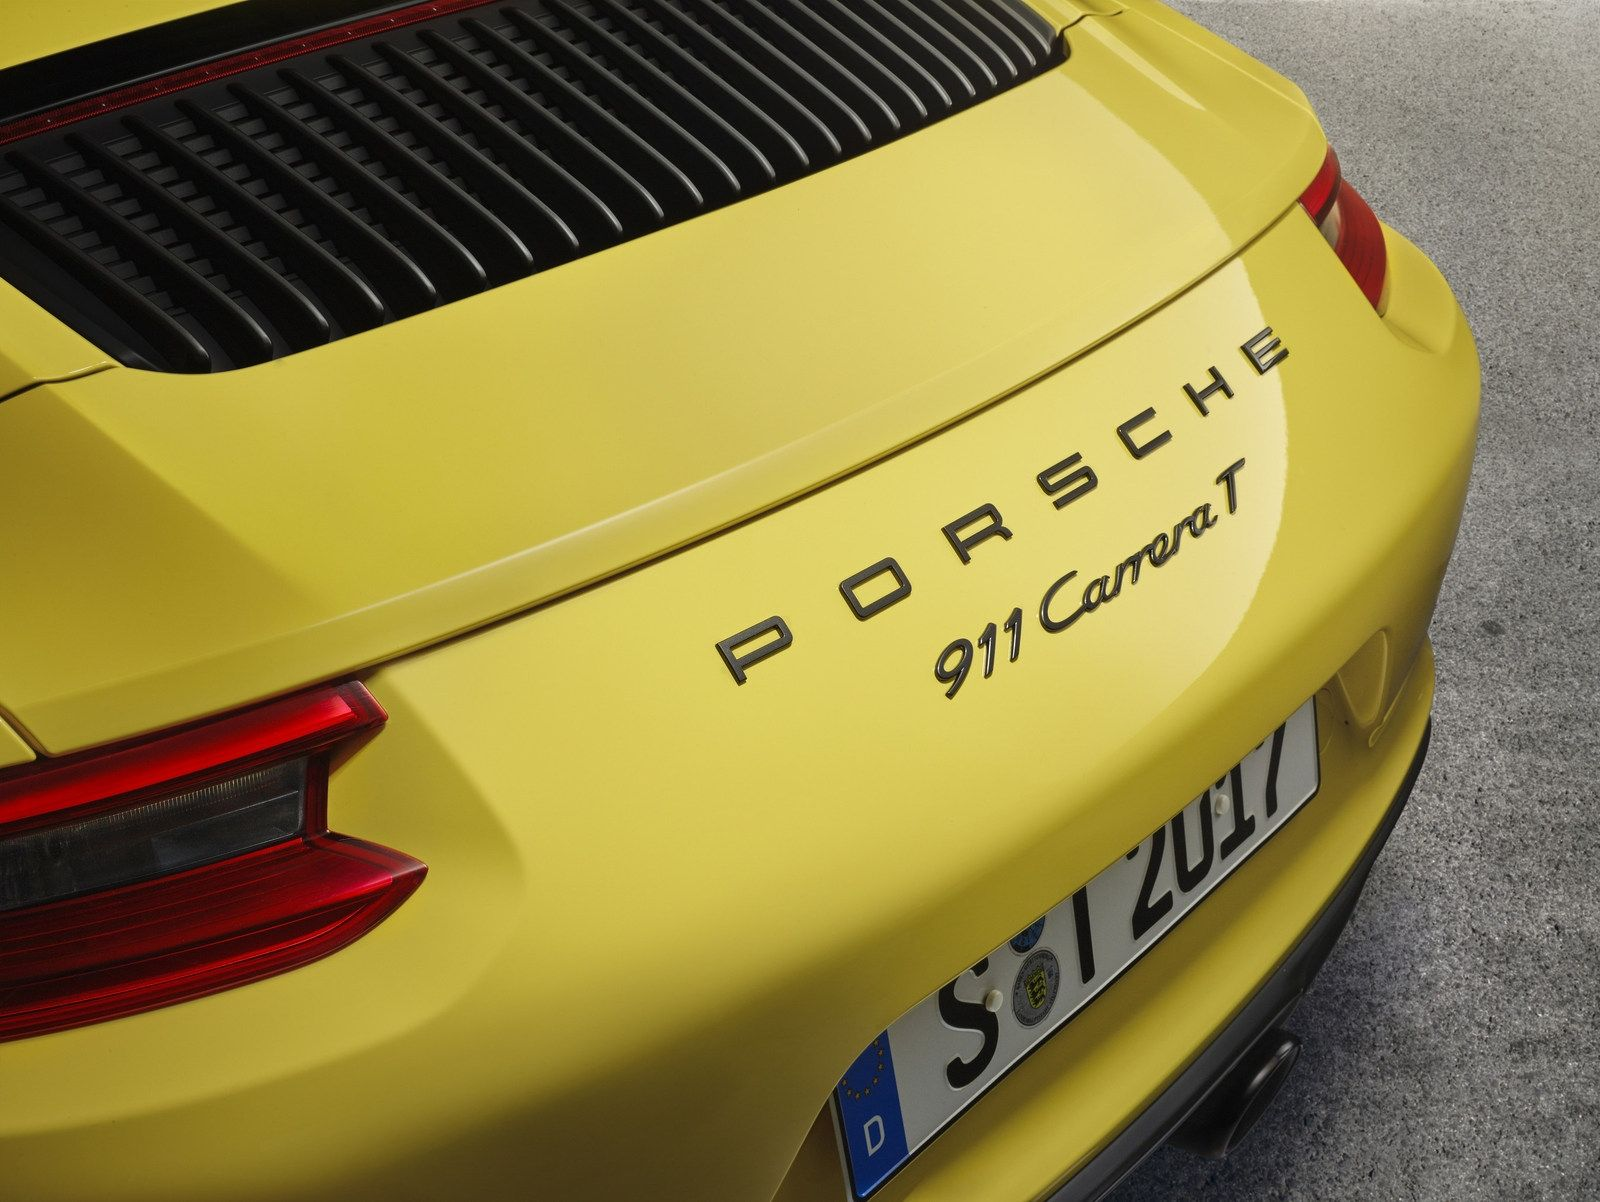 Porsche Just Resurected The 911T Making It The Lightest Carrera